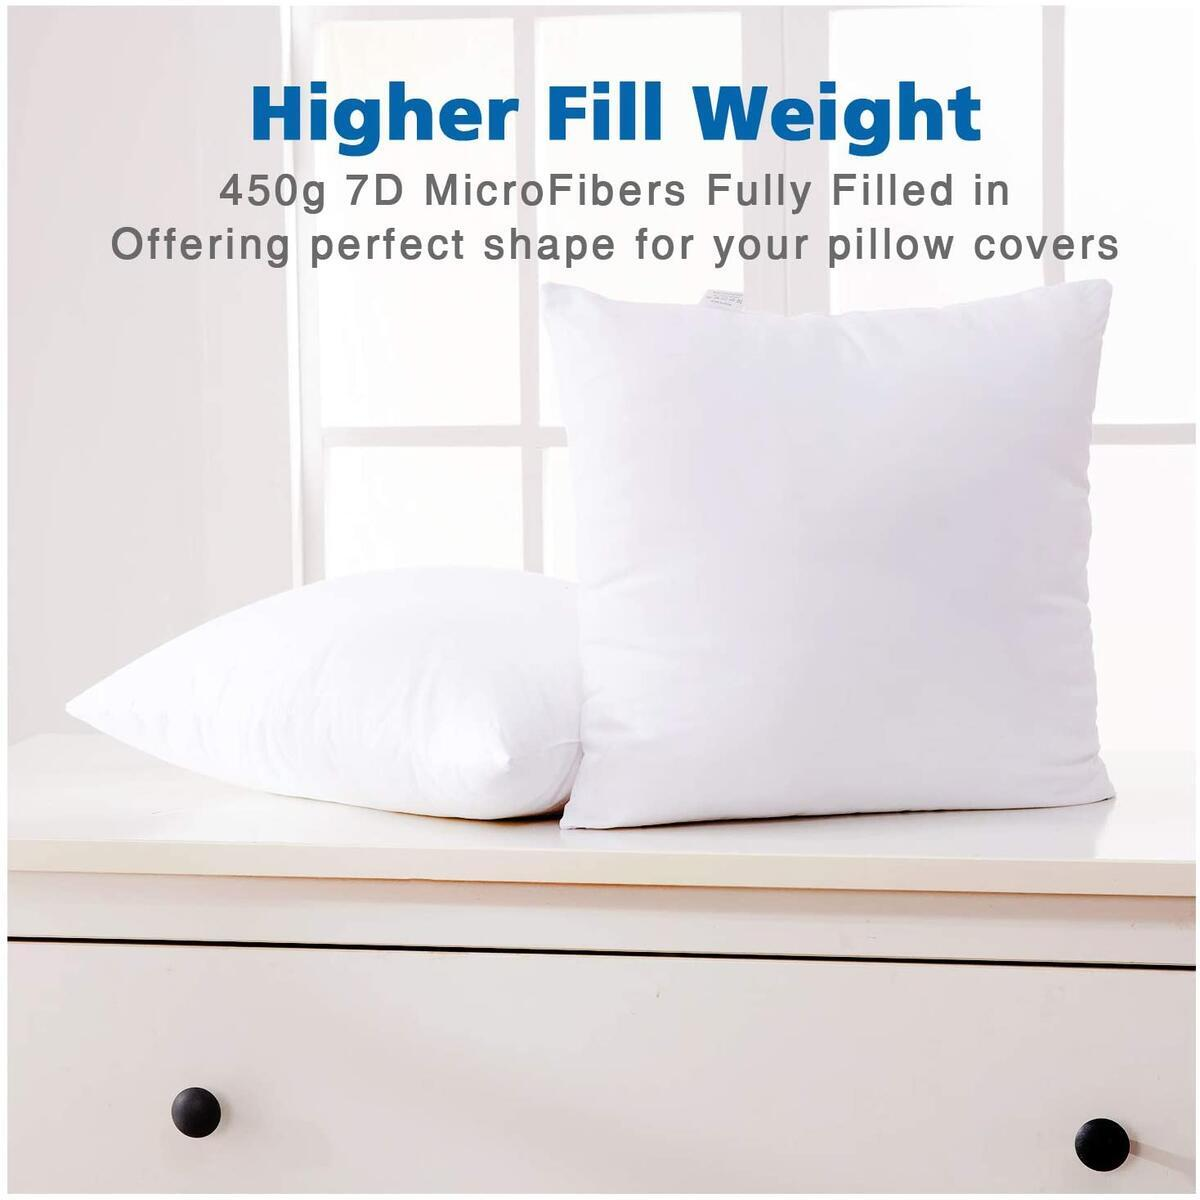 Eggishorn Throw Pillow Inserts (Pack of 2) 16 x 16 inch Filling with 450g Premium Resilient Microfiber Soft Bed and Couch Cushion